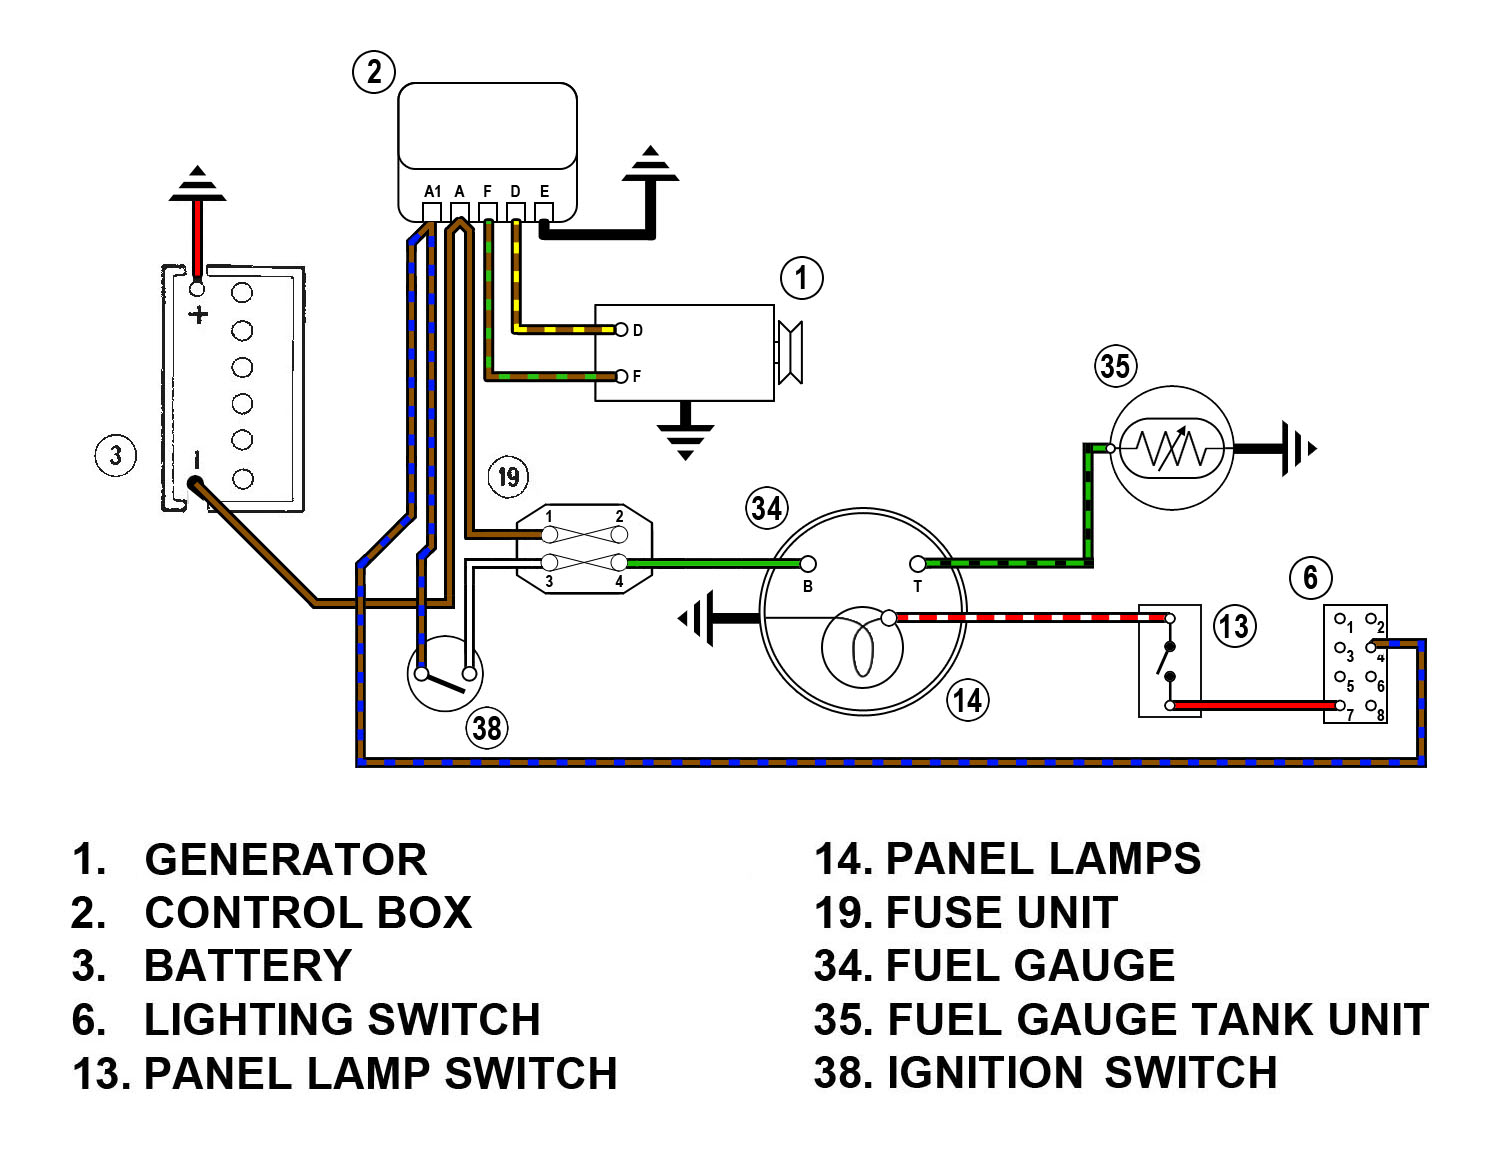 DIAGRAM] Cj2a Fuel Gauge Wiring Diagram FULL Version HD Quality Wiring  Diagram - PAMUKKALEGRAFIK.CHEFSCUISINIERSAIN.FRpamukkalegrafik.chefscuisiniersain.fr